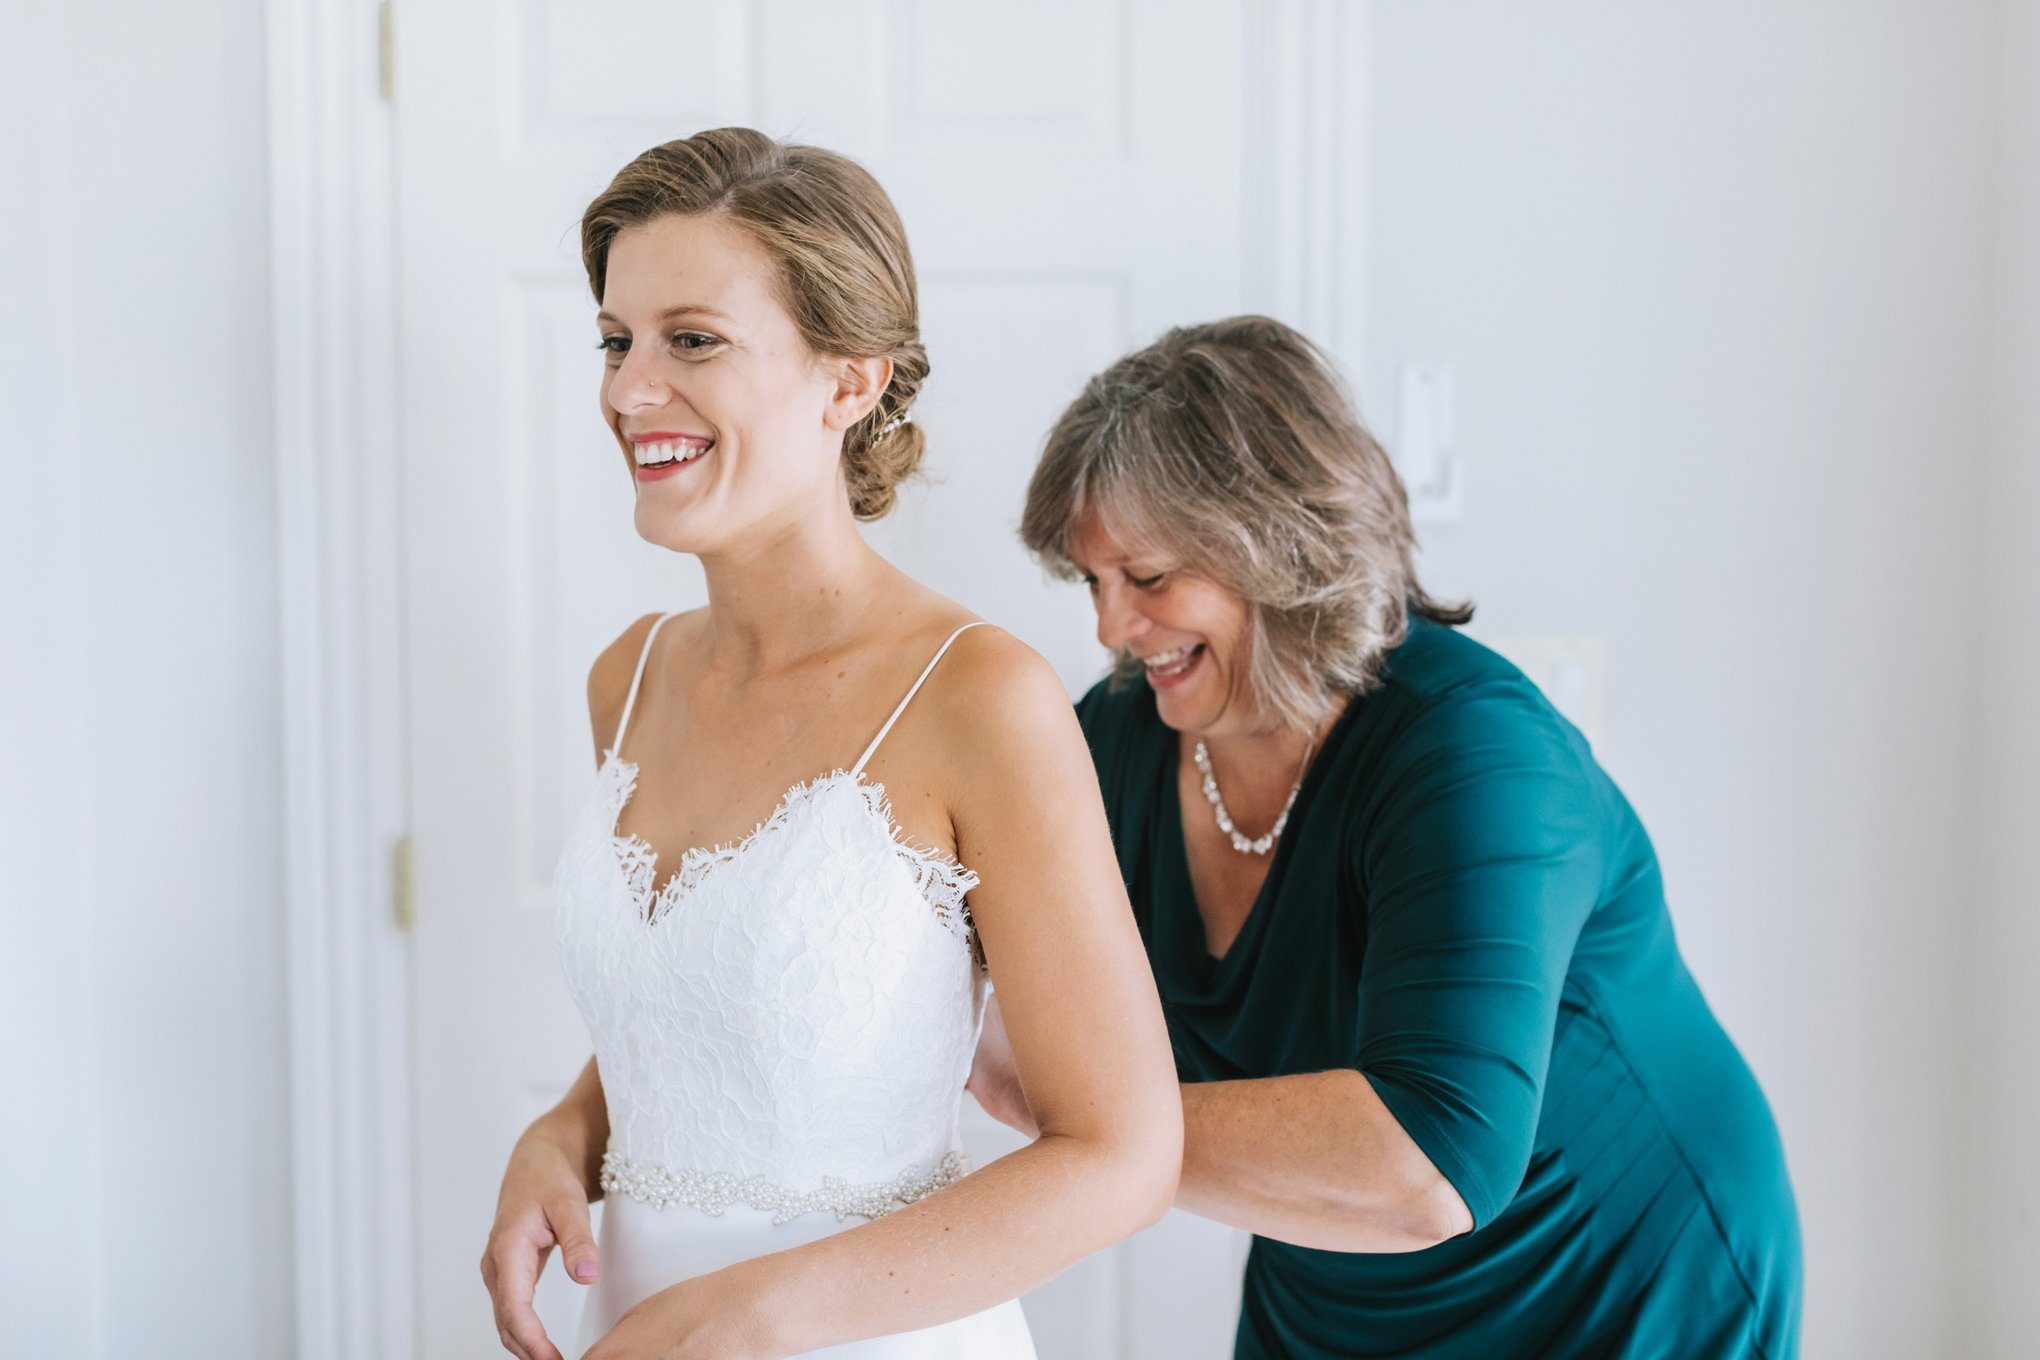 Cambridge_Puritan_Co_Wedding_Photographer_Harvard_5.jpg